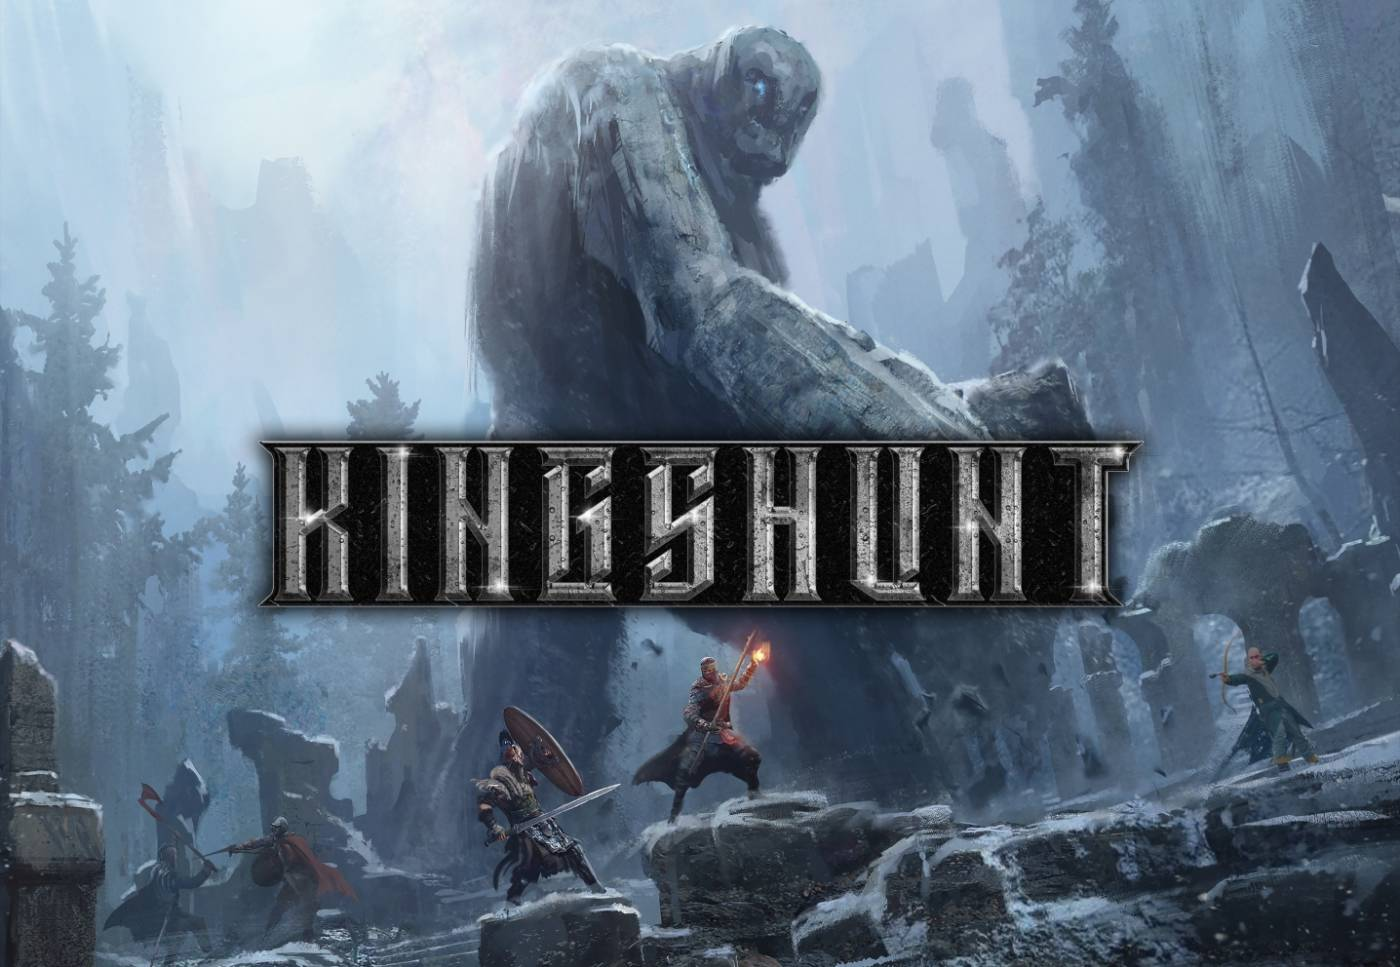 Kingshunt game art